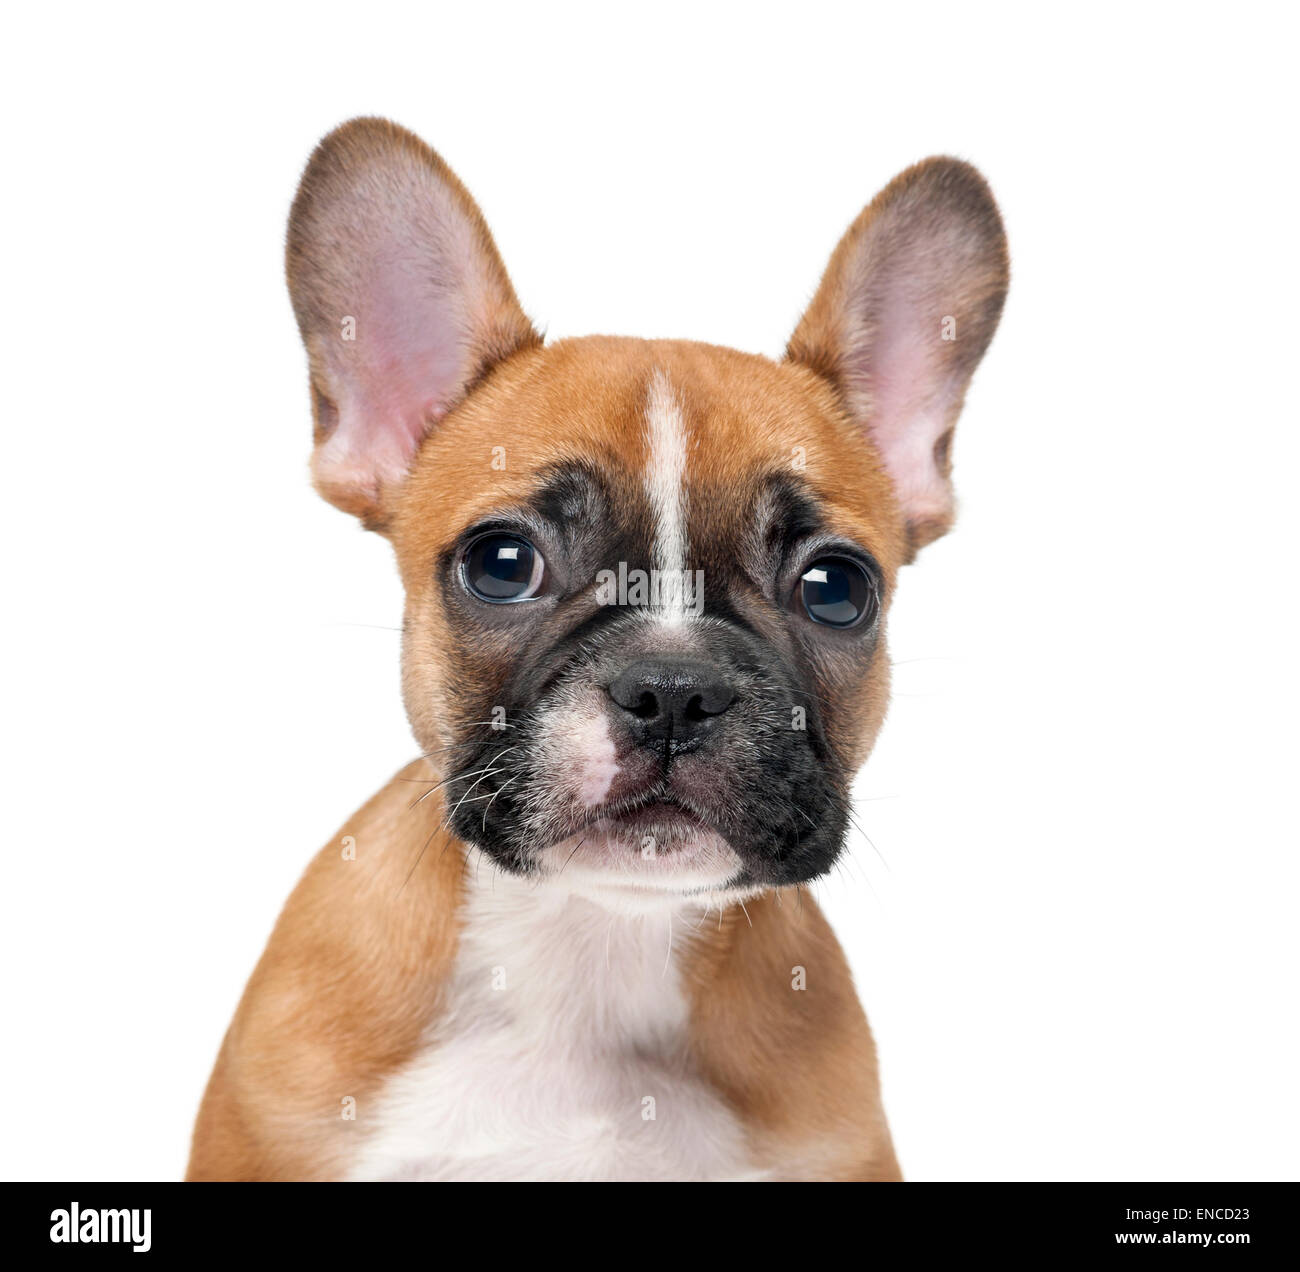 French bulldog puppy in front of a white background Stock Photo